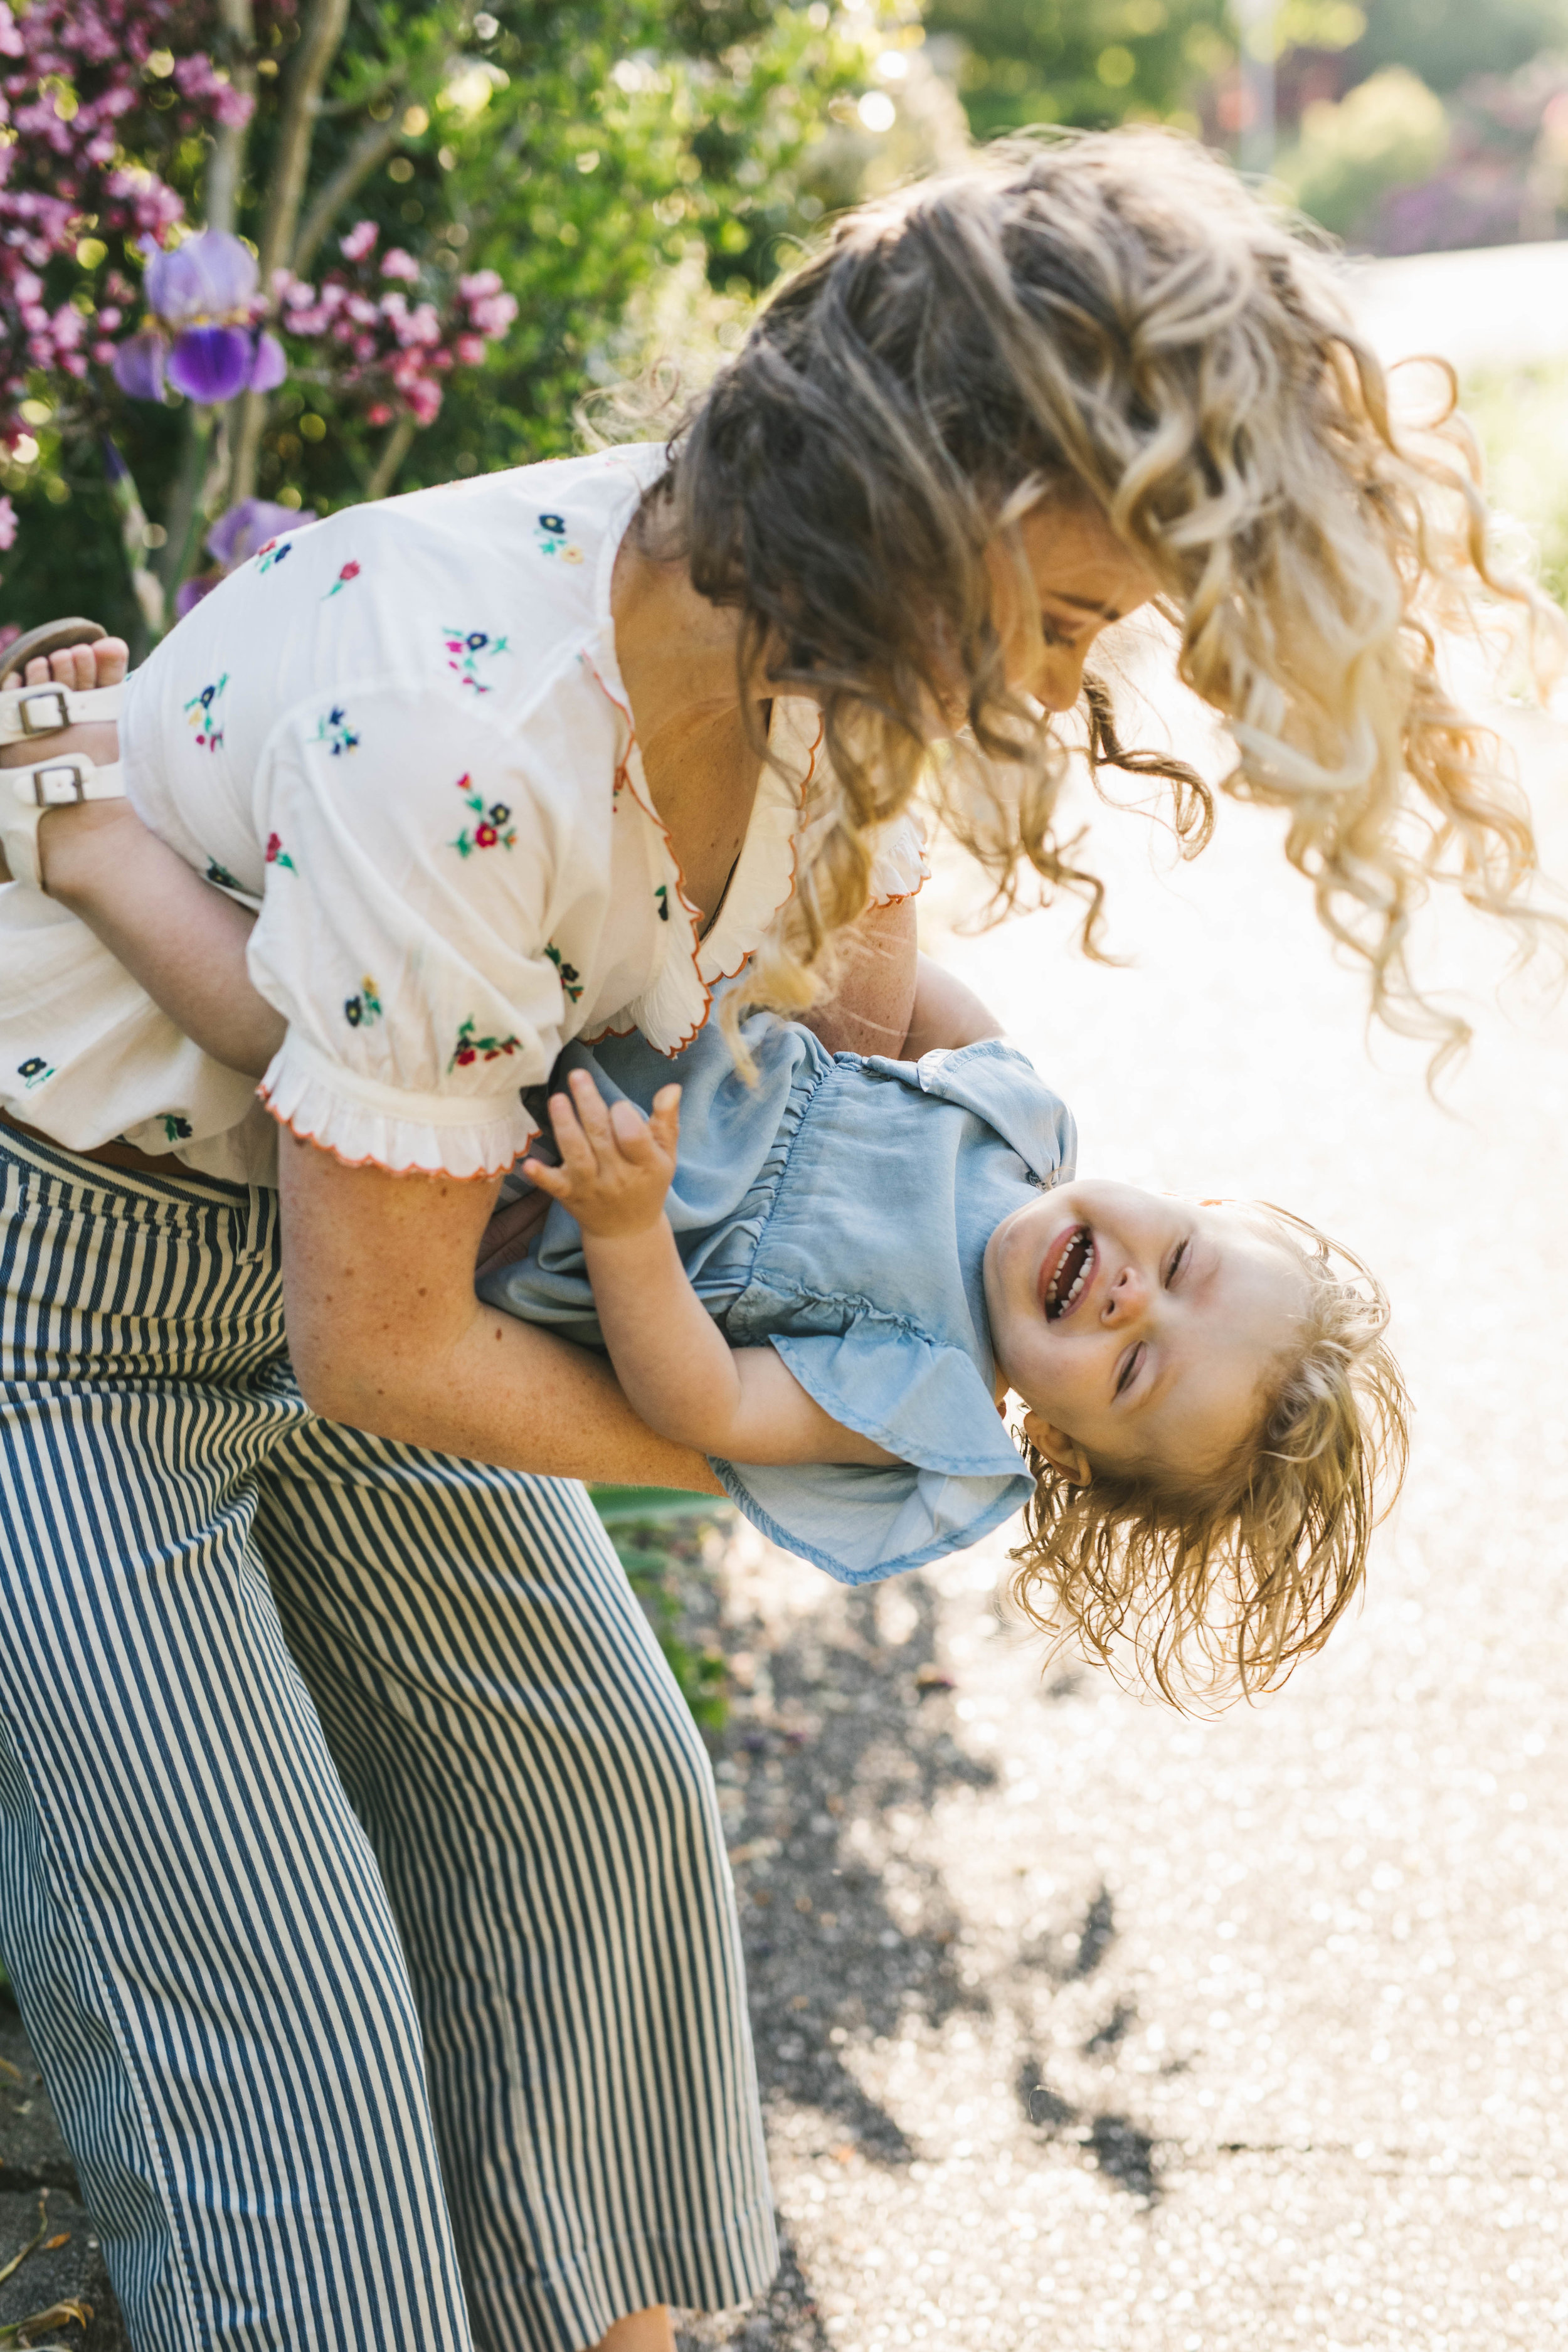 An in-home mother and daughter photography session in Seattle. Beautiful photos can be made with the grumpiest of toddlers. Photos of Brooke Eide and Prim from Chelsea Macor Photography. #seattlefamilyphotography #seattlenewbornphotography #seattlemotherdaughterphotos #mommyandme #lifestylephotography